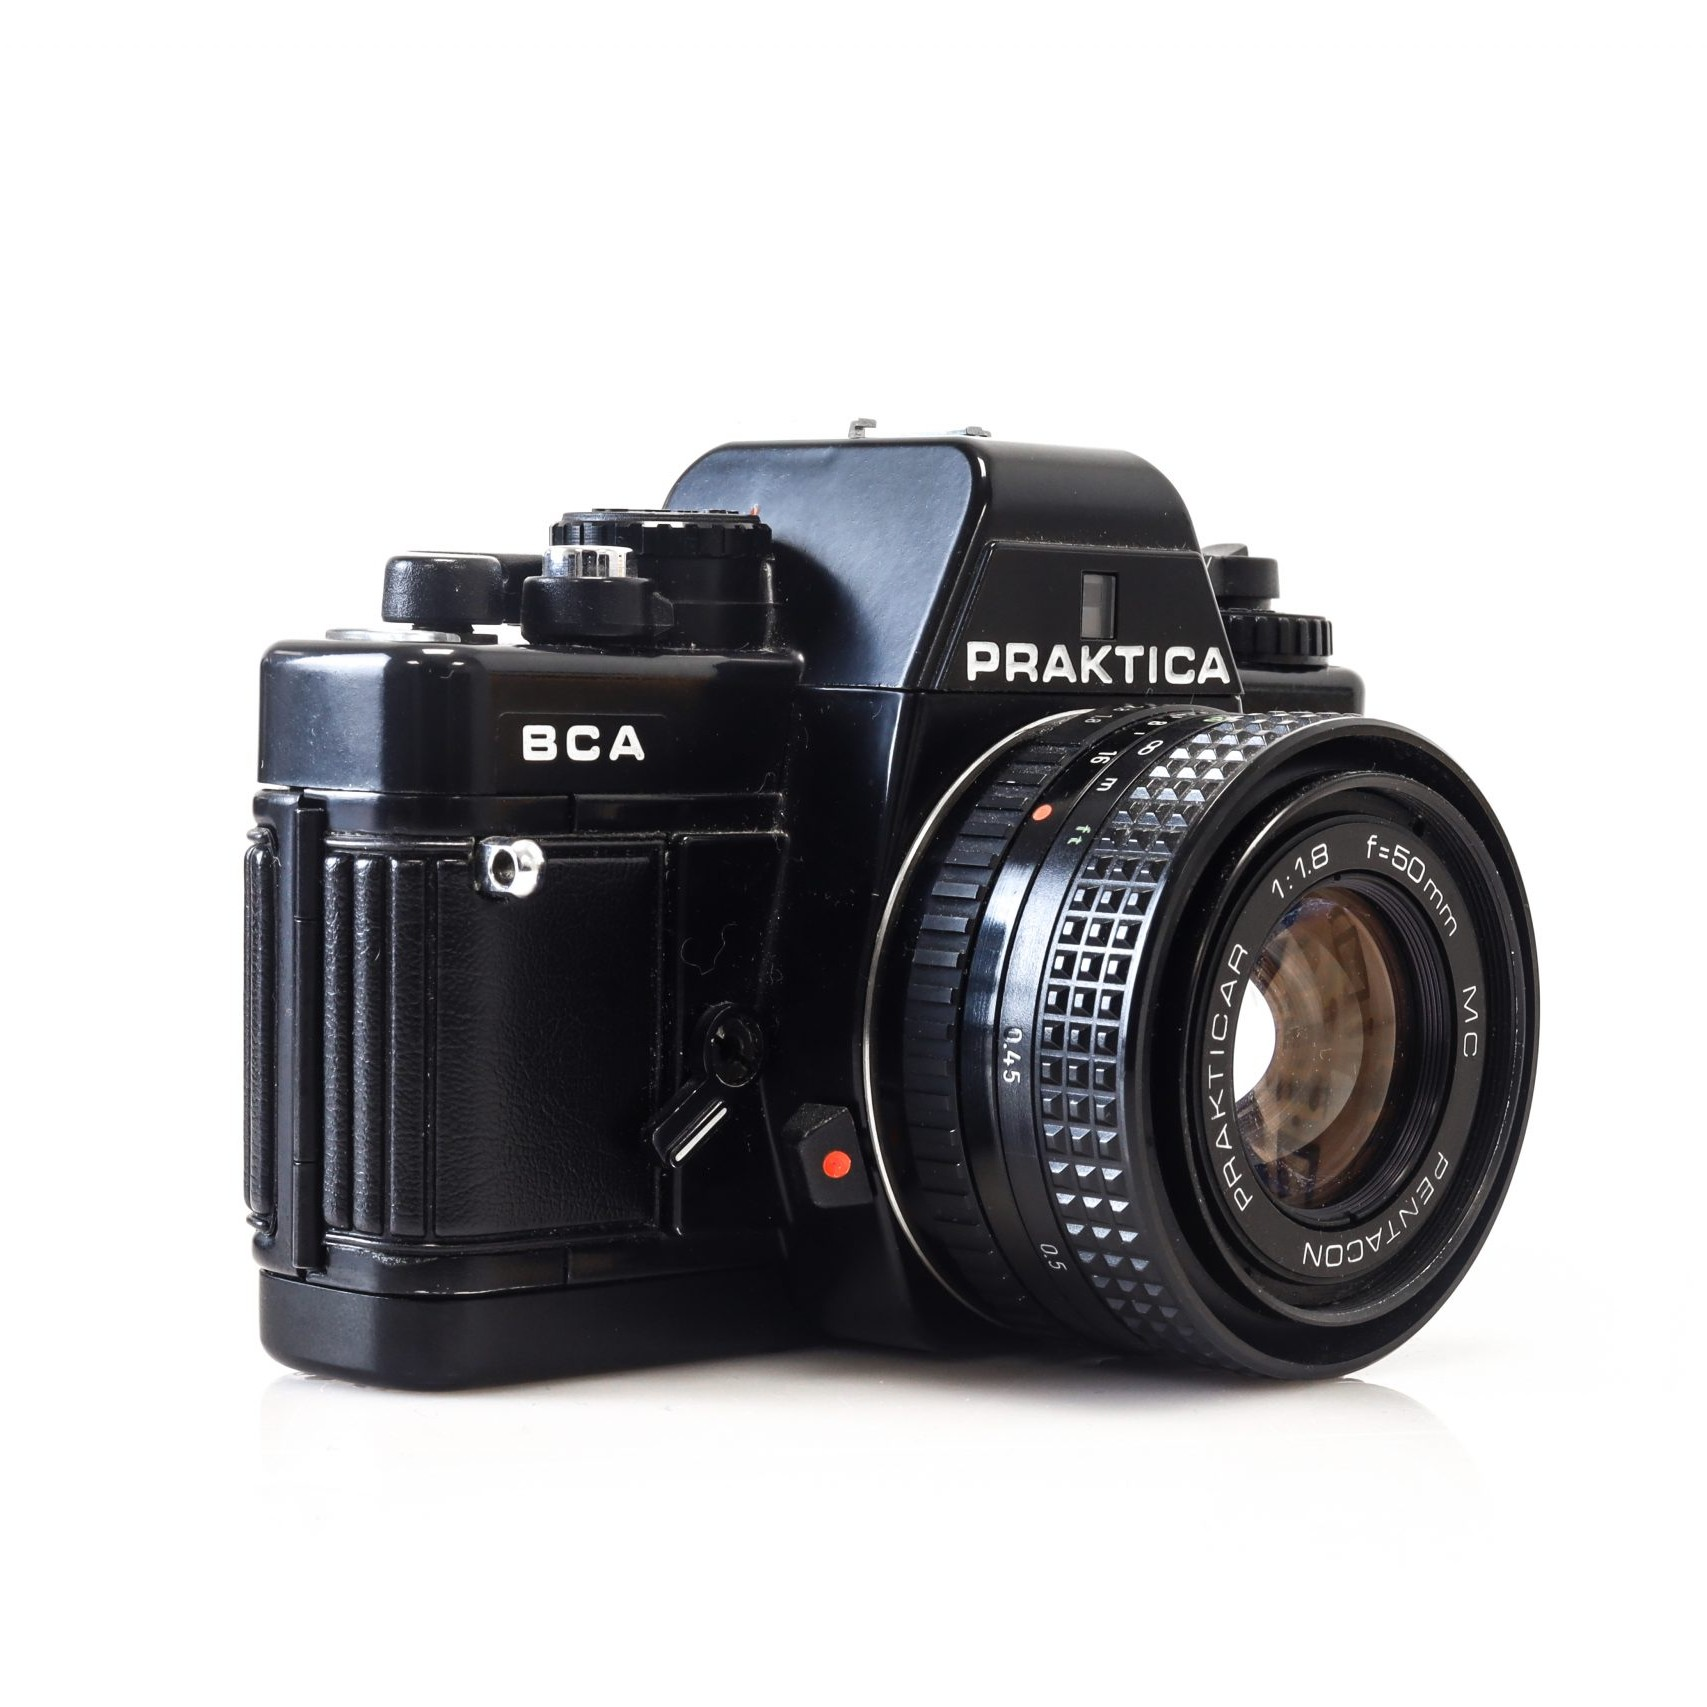 Gorgeous Praktica BCA 35mm Film Camera with 50mm F1.8 lens (Tested and Working)